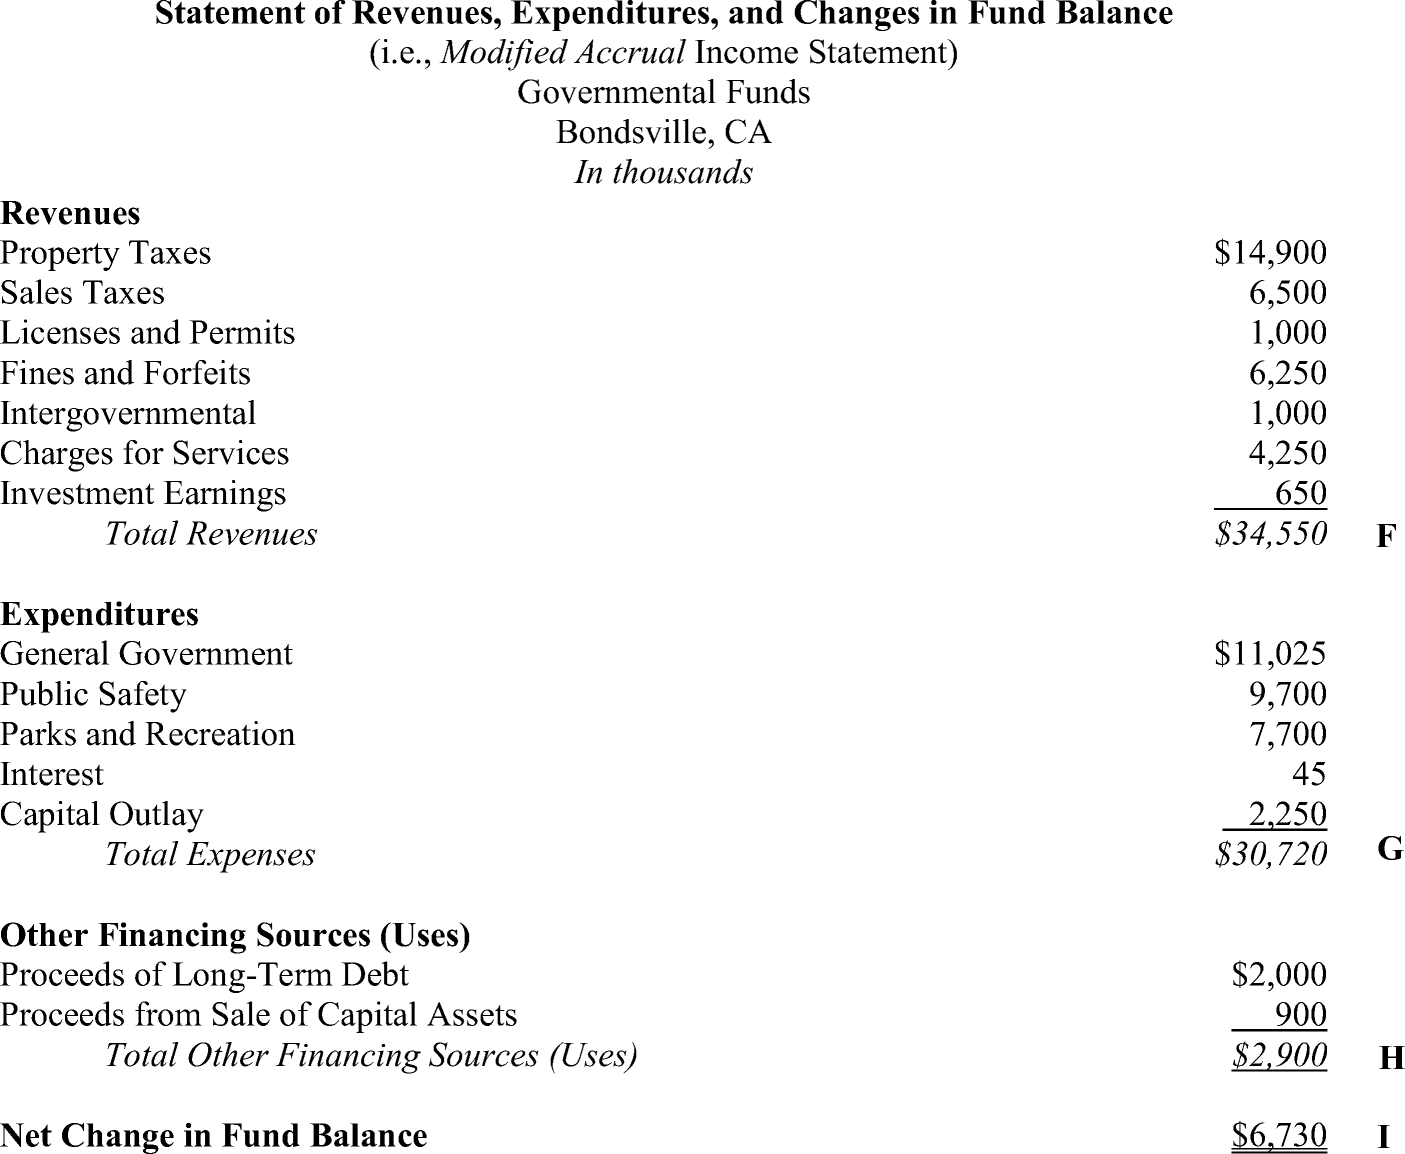 Opportunistic financial reporting around municipal bond